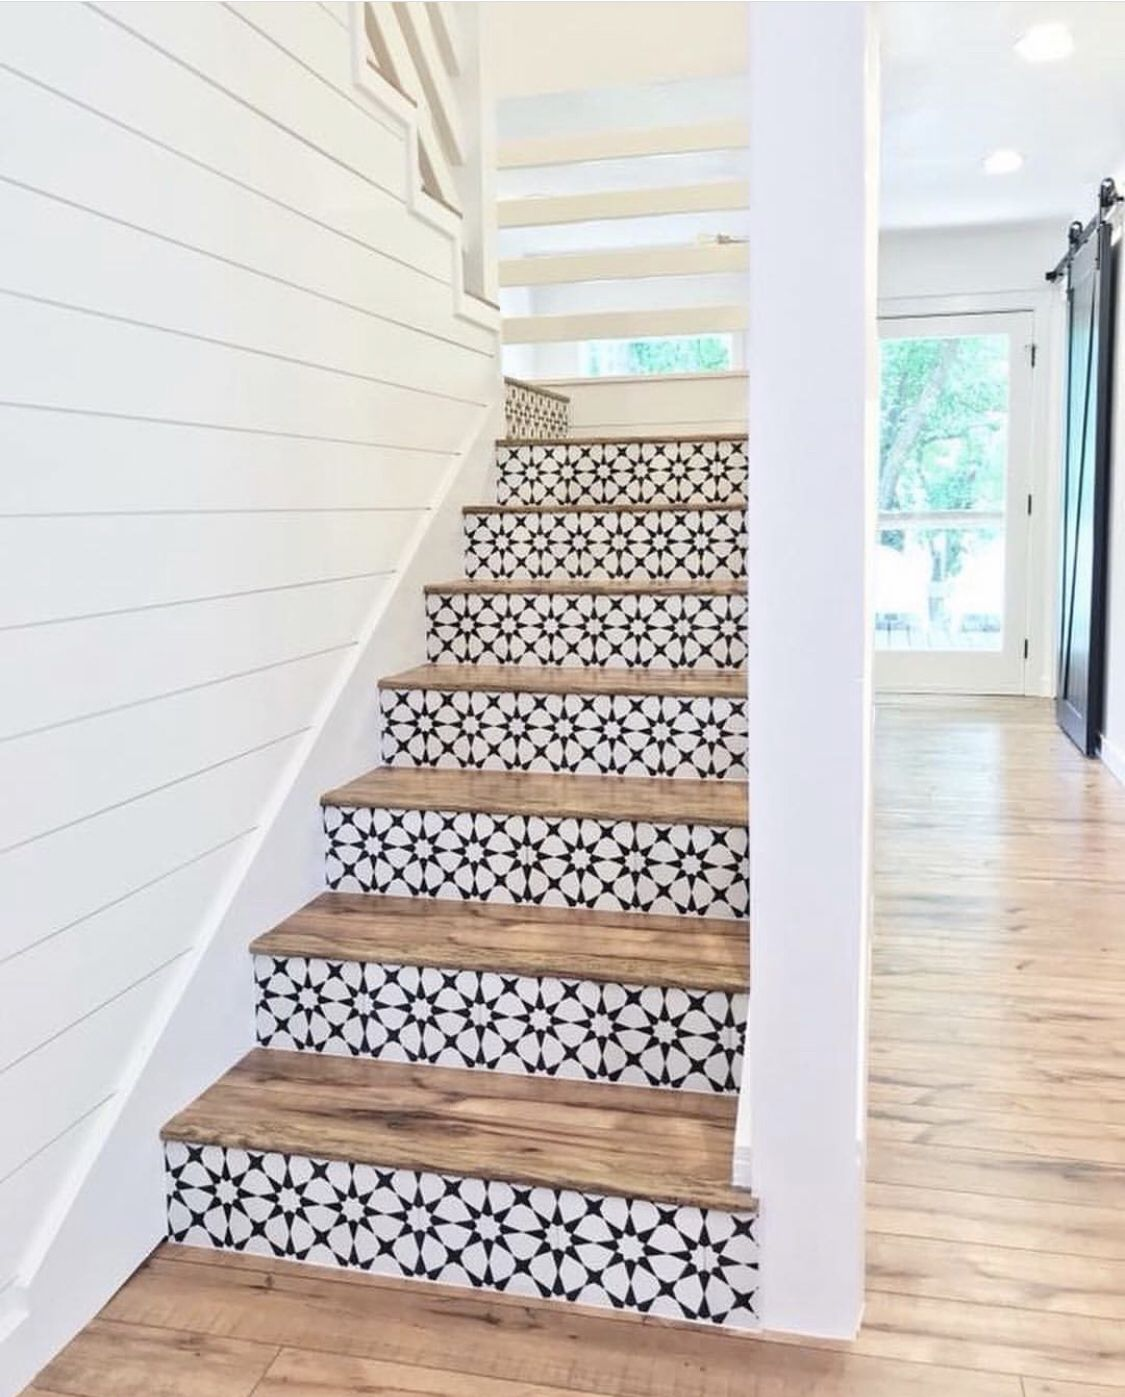 Patterned Staircase Side Note I Love The Shade Of Wood With The Black And White House Design Home Tile Stairs